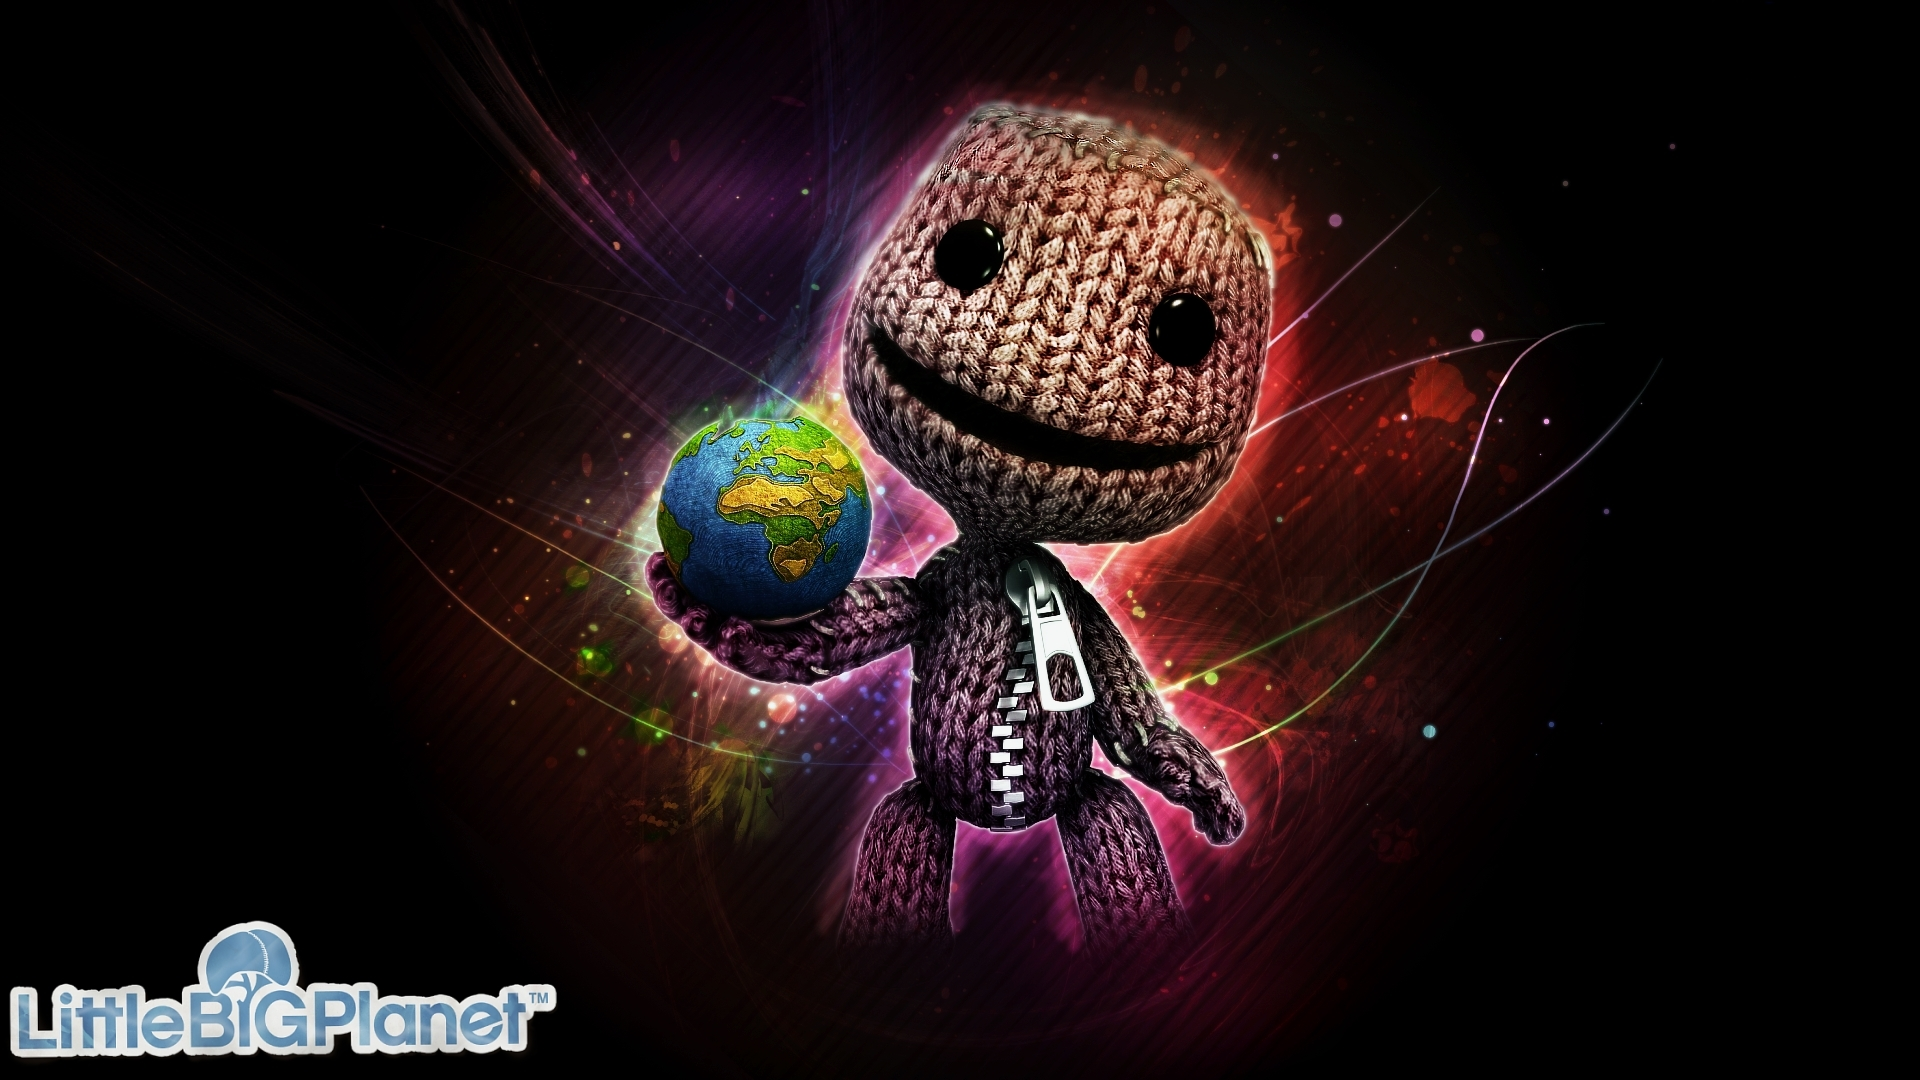 Co writer - Little Big Planet 3